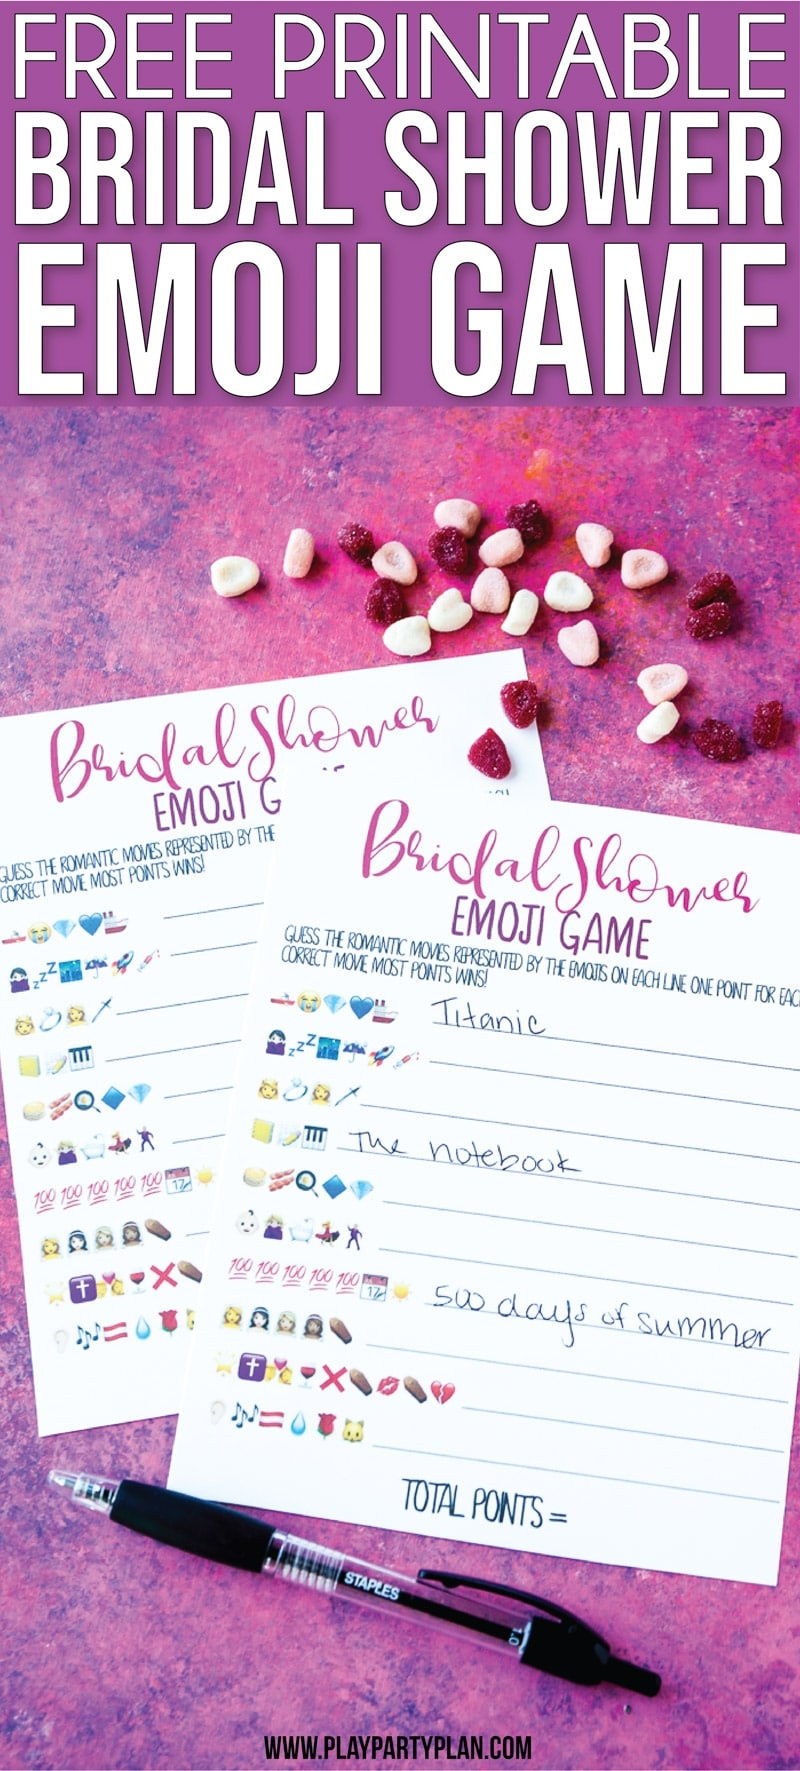 Free Printable Bridal Shower Name The Emoji Game - Emoji Bridal Shower Game Free Printable